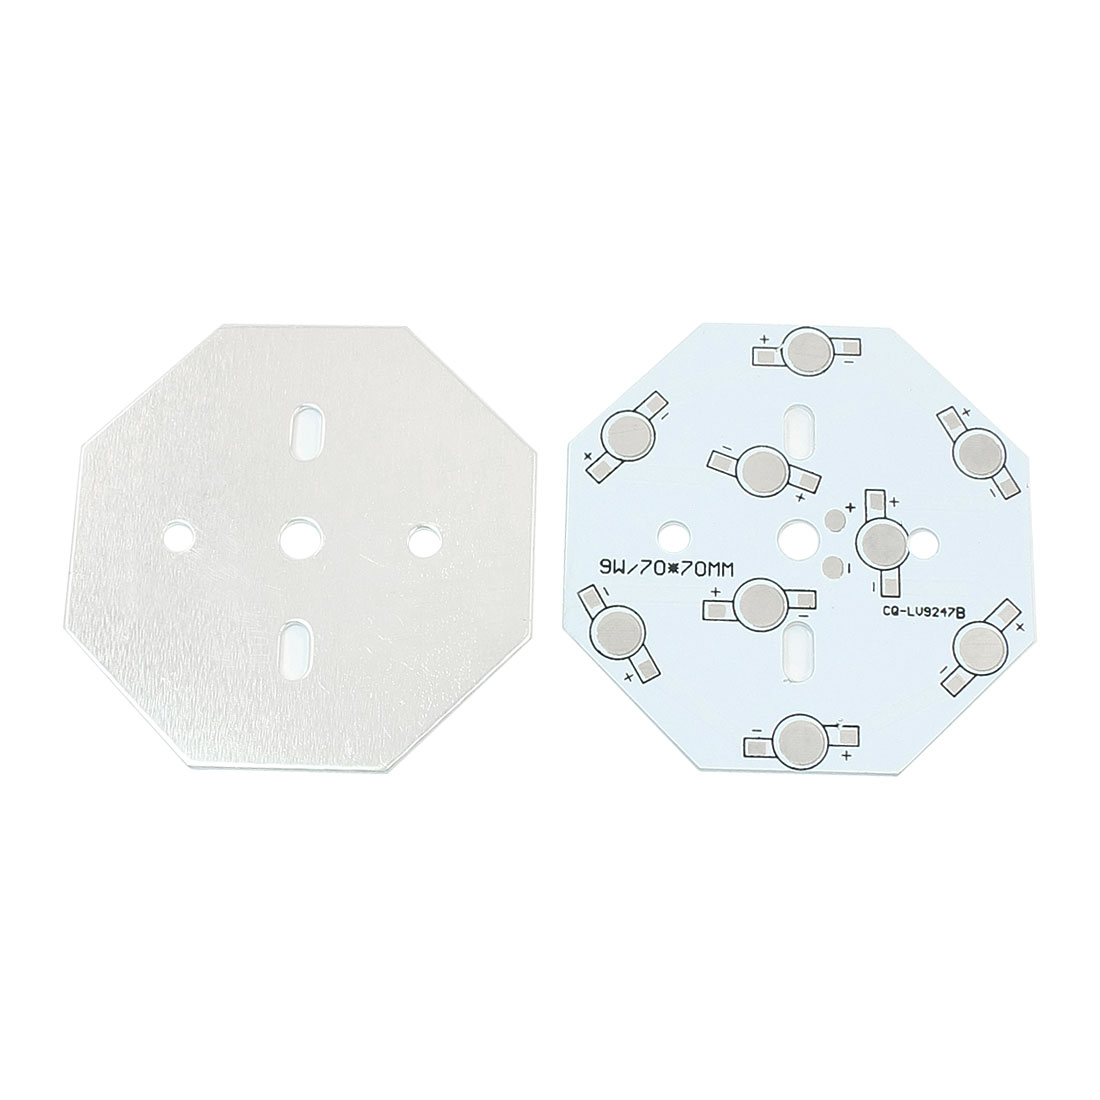 2pcs 70mm x 70mm Octangle Aluminum PCB Printed Circuit Board for 1W/3W High Power 9LEDs in Series